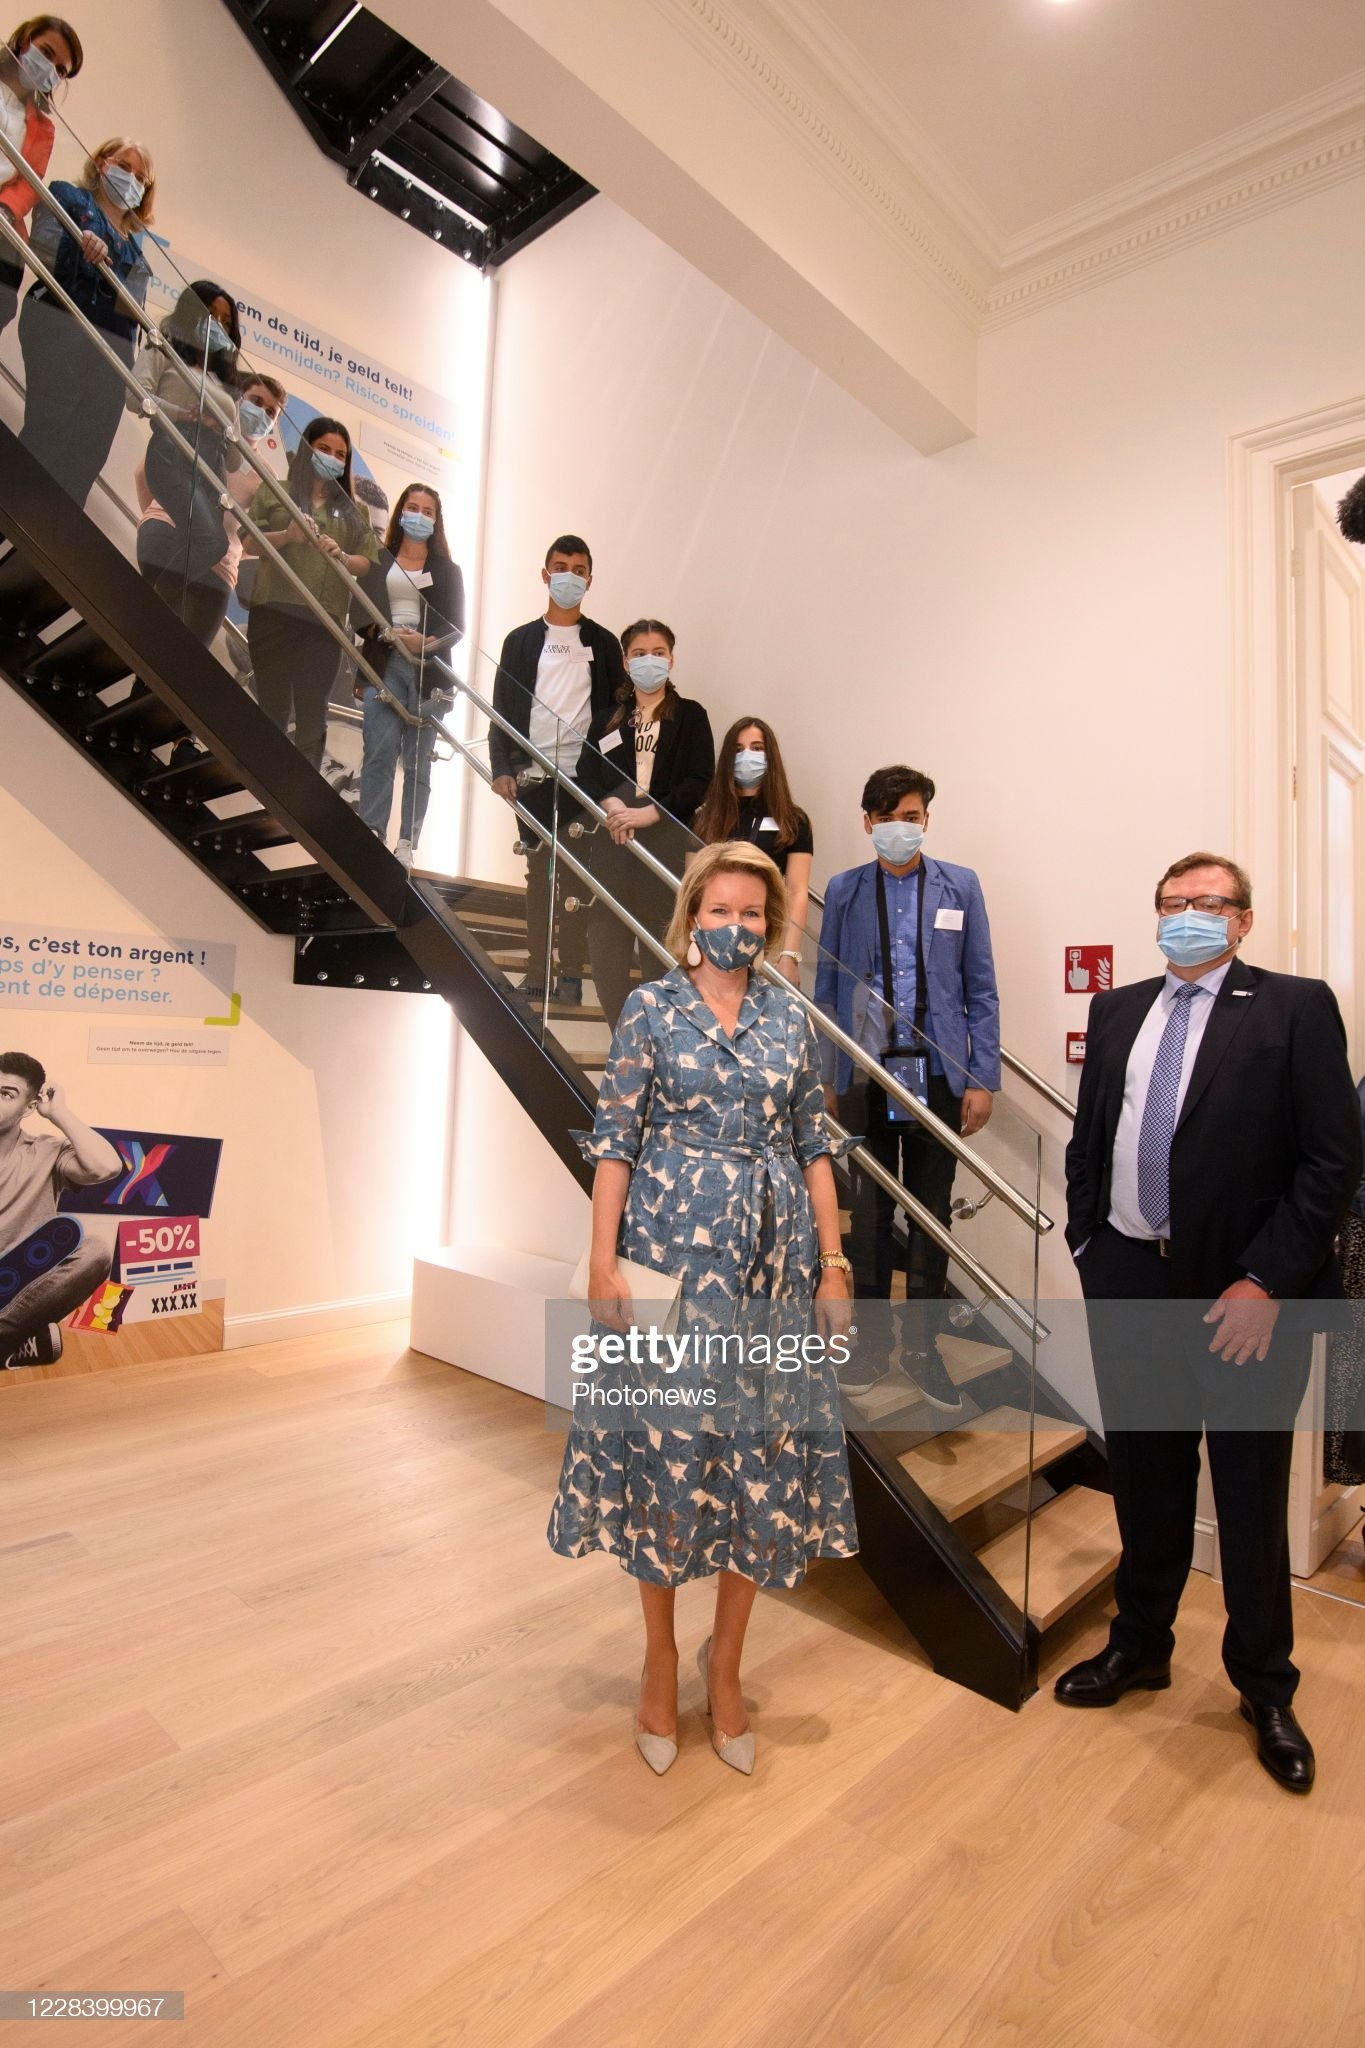 opening-of-the-new-wikifin-lab-in-the-presence-of-the-queen-mathilde-picture-id1228399967